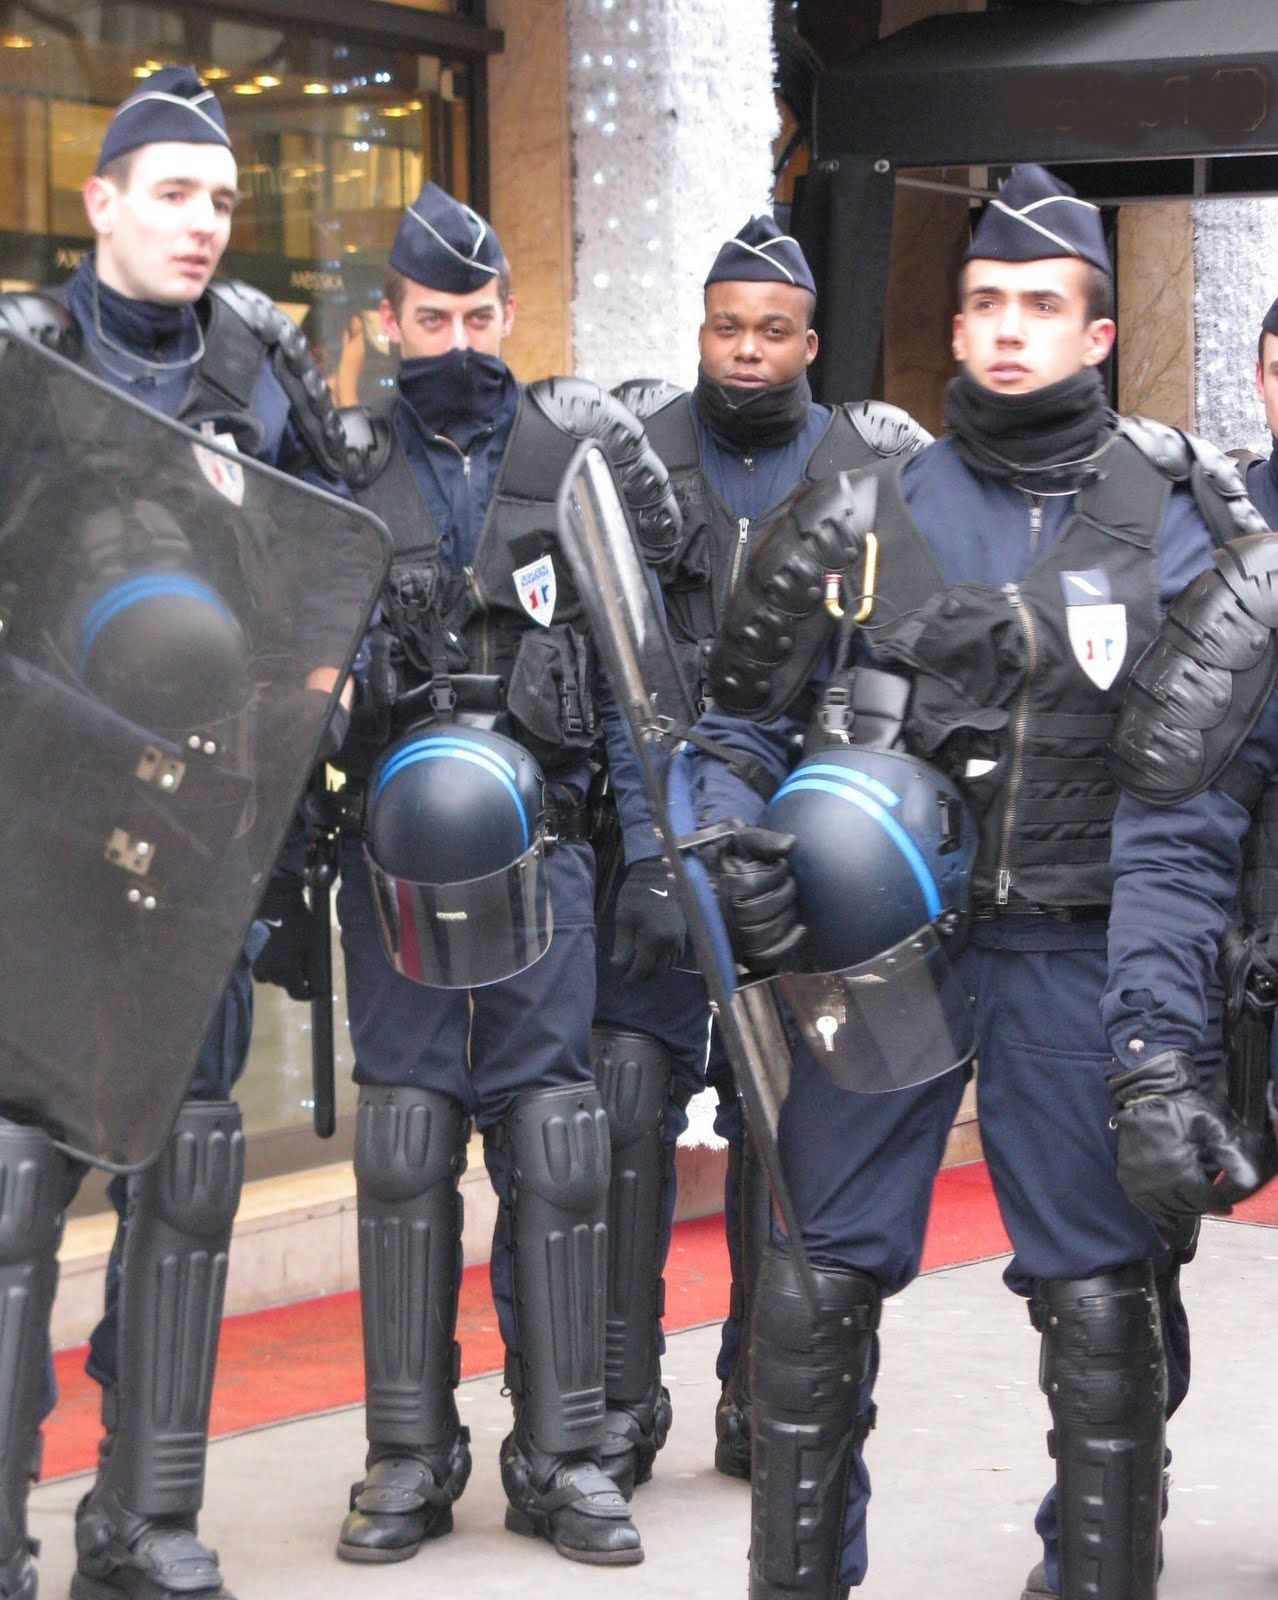 French riot Police Uniforms Riot police Police Men